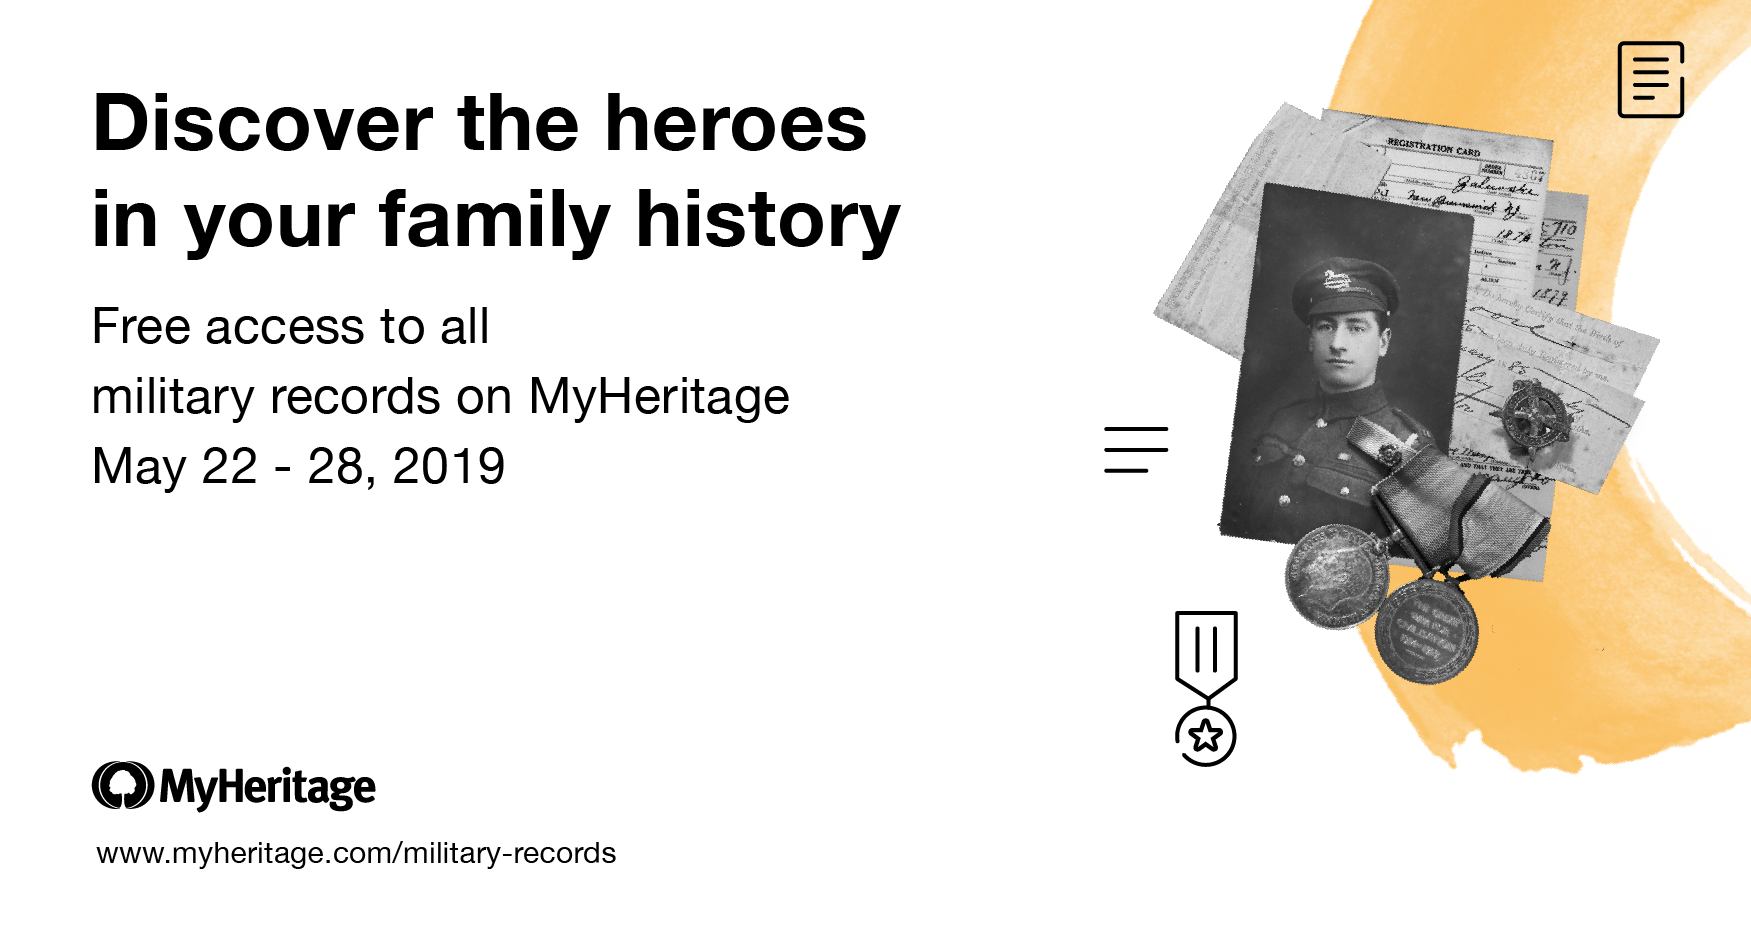 Military Records for Memorial Day 2019